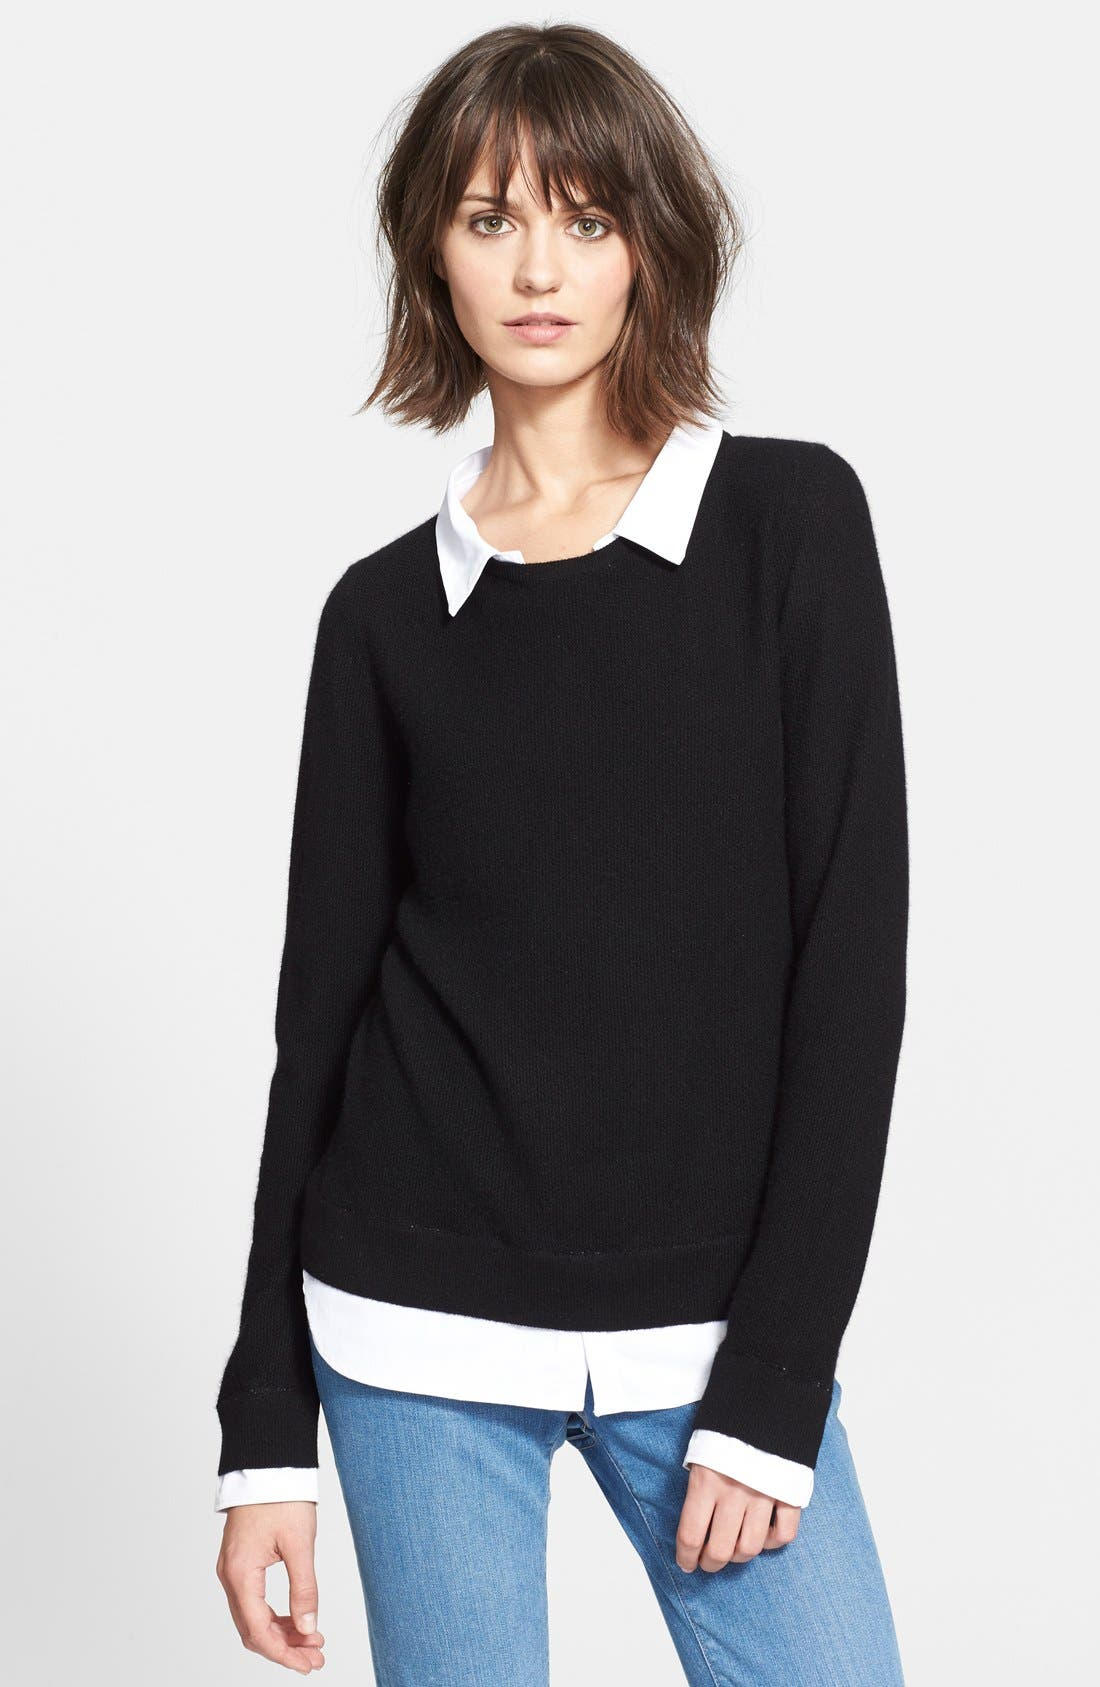 Main Image - Joie 'Rika' Layered Look Wool & Cashmere Sweater